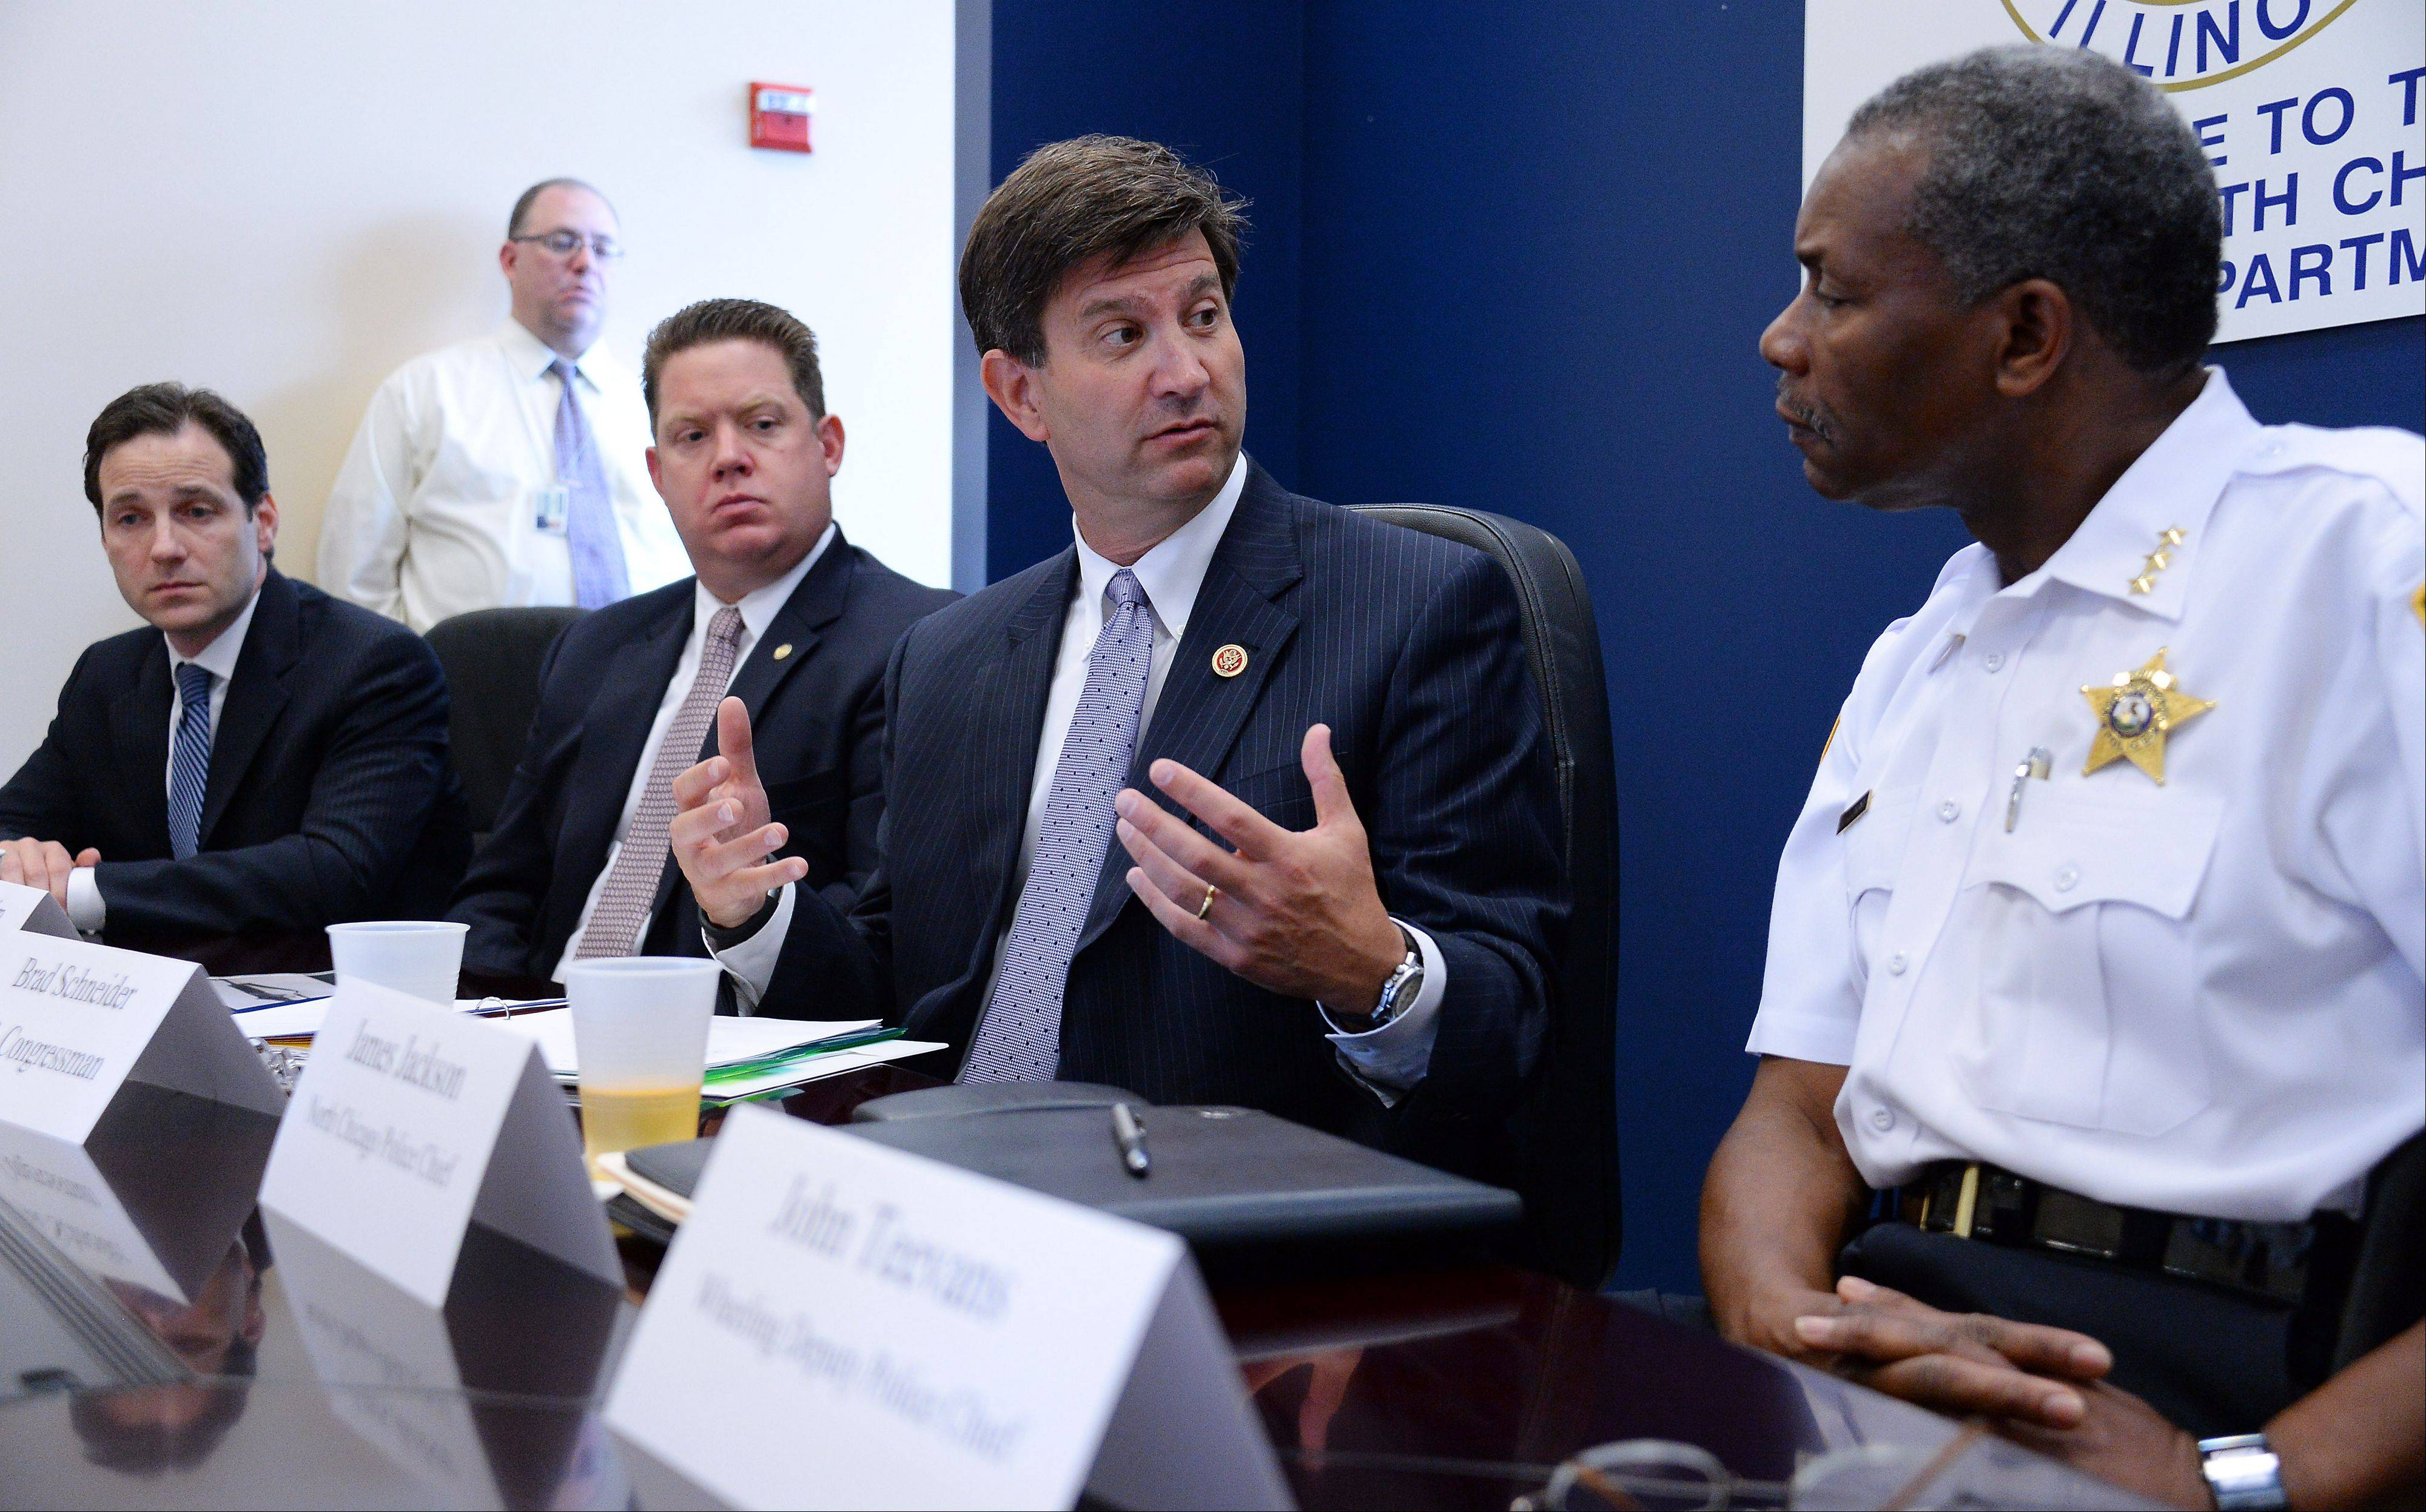 U.S. 10th District congressman Brad Schneider talks with North Chicago Police Chief James Jackson and other area police chiefs about ways to combat gun violence on local, federal and state levels in North Chicago on Wednesday.